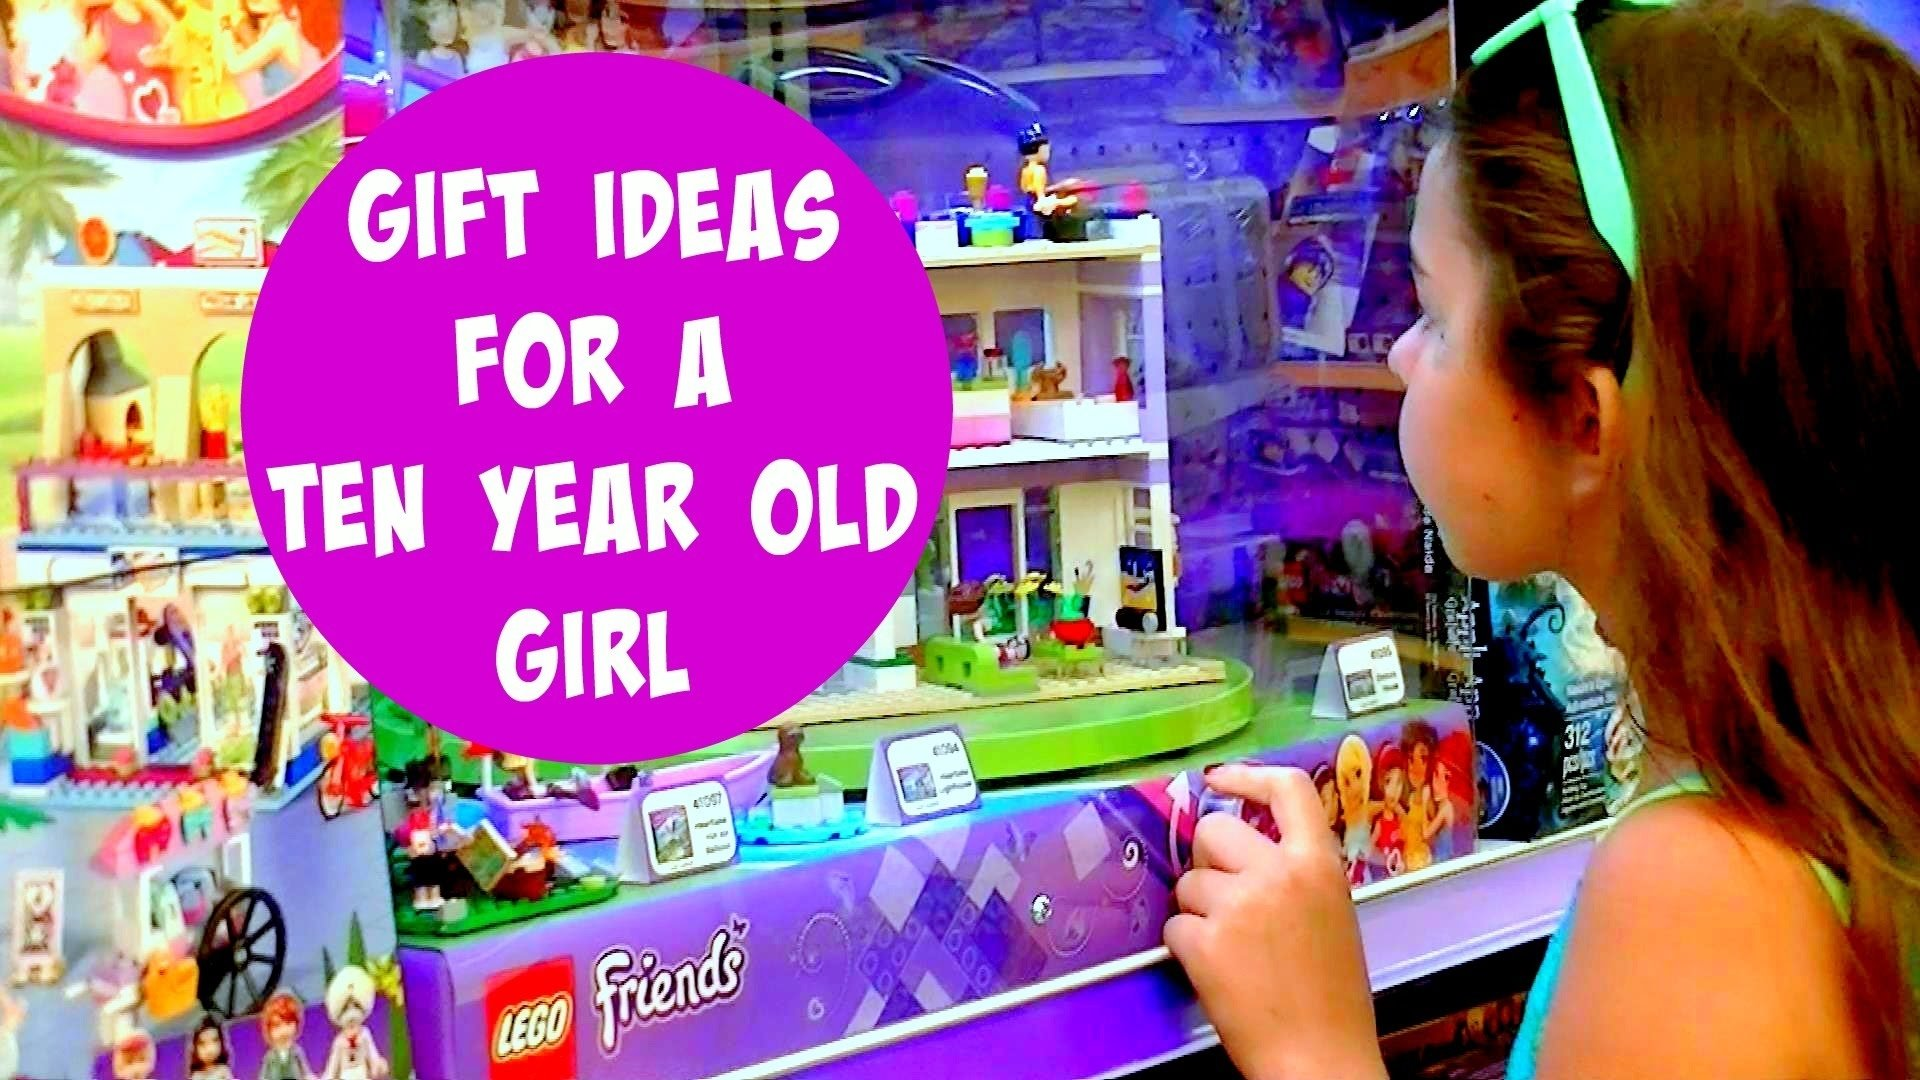 10 Lovable 10 Year Old Girl Gift Ideas birthday gift ideas for a 10 year old girl under 30 youtube 13 2020